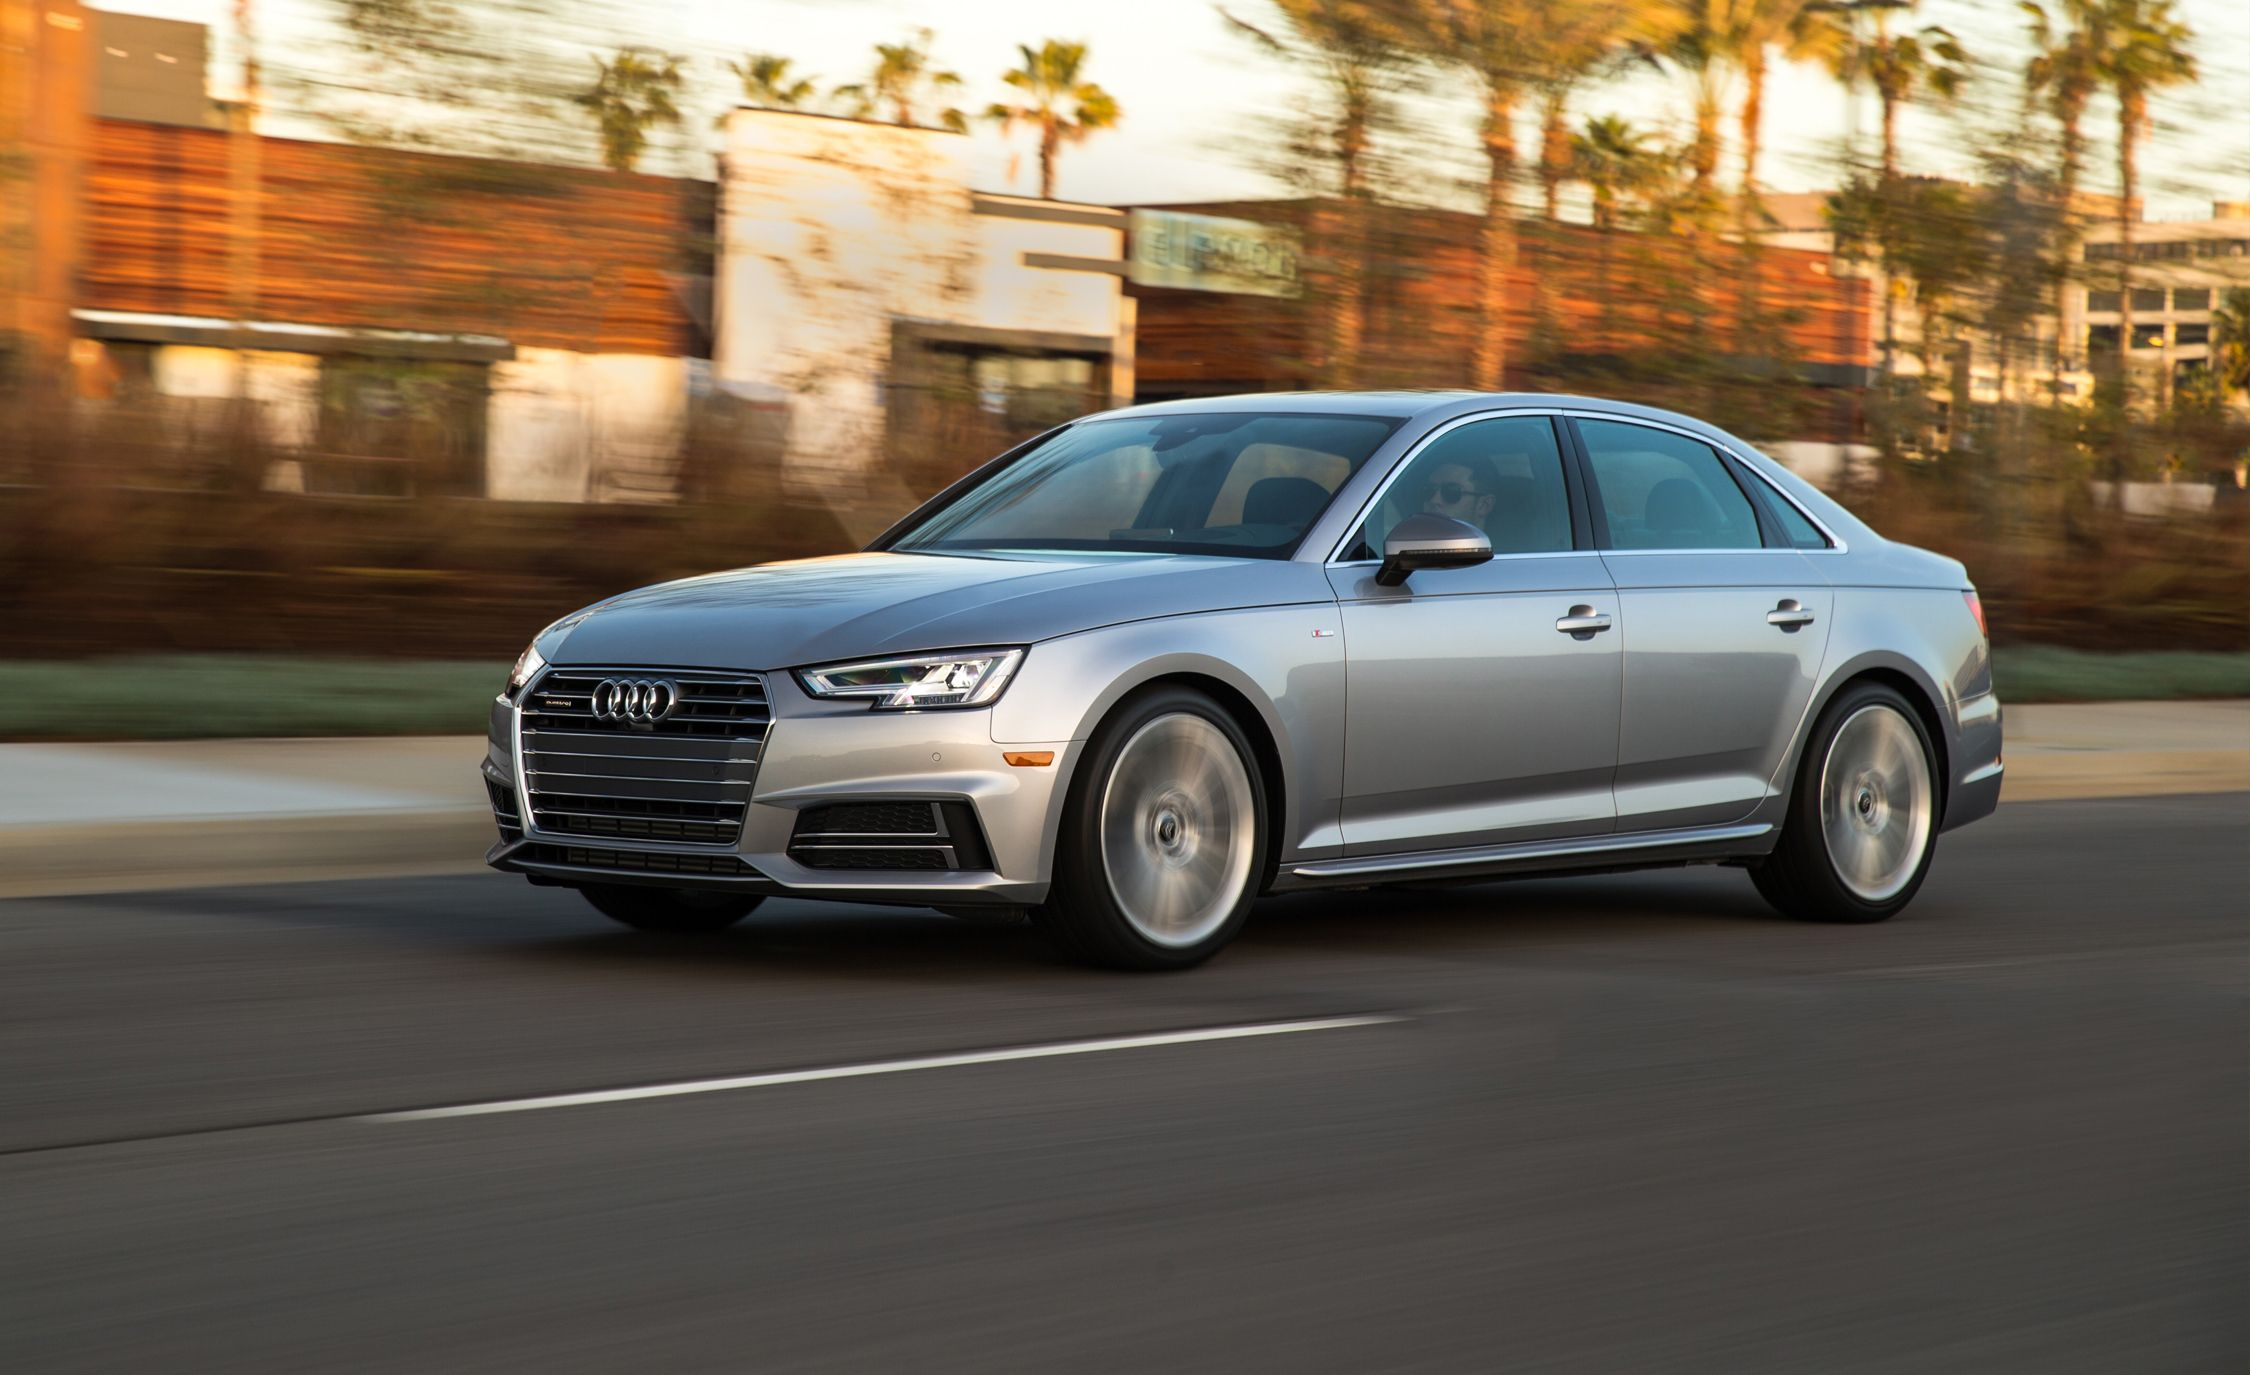 Audi A InDepth Model Review Car And Driver - Audi a4 2018